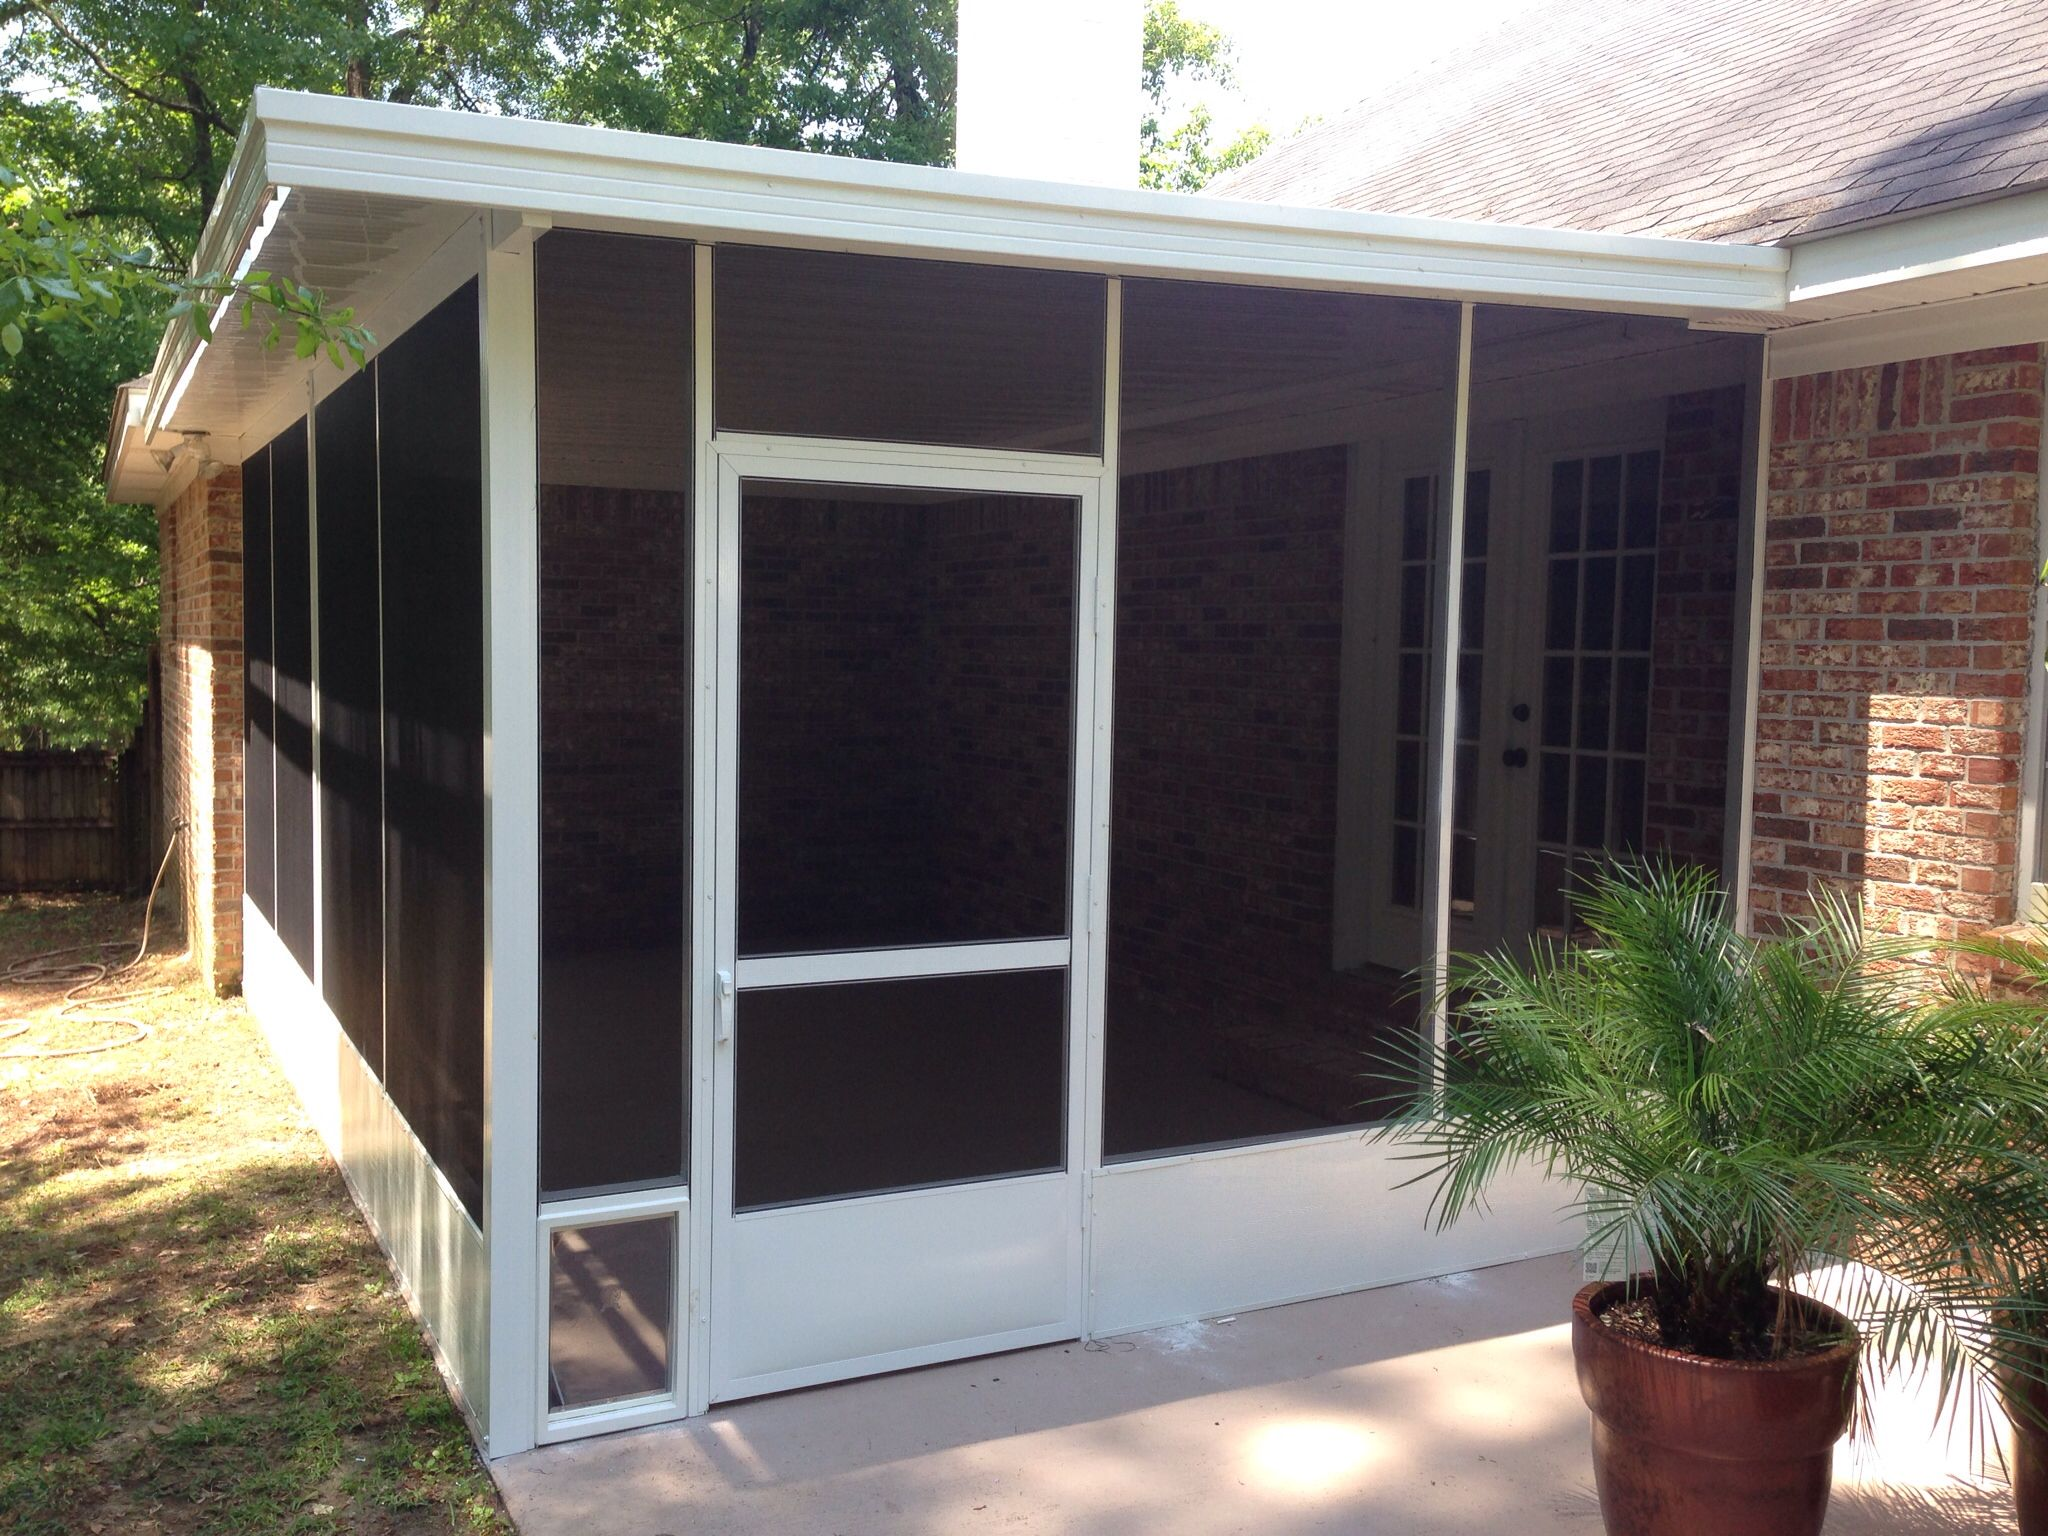 A Lovely 12u0027 By 18u0027 Screened Aluminum Cover On A Shaded Rear Patio.